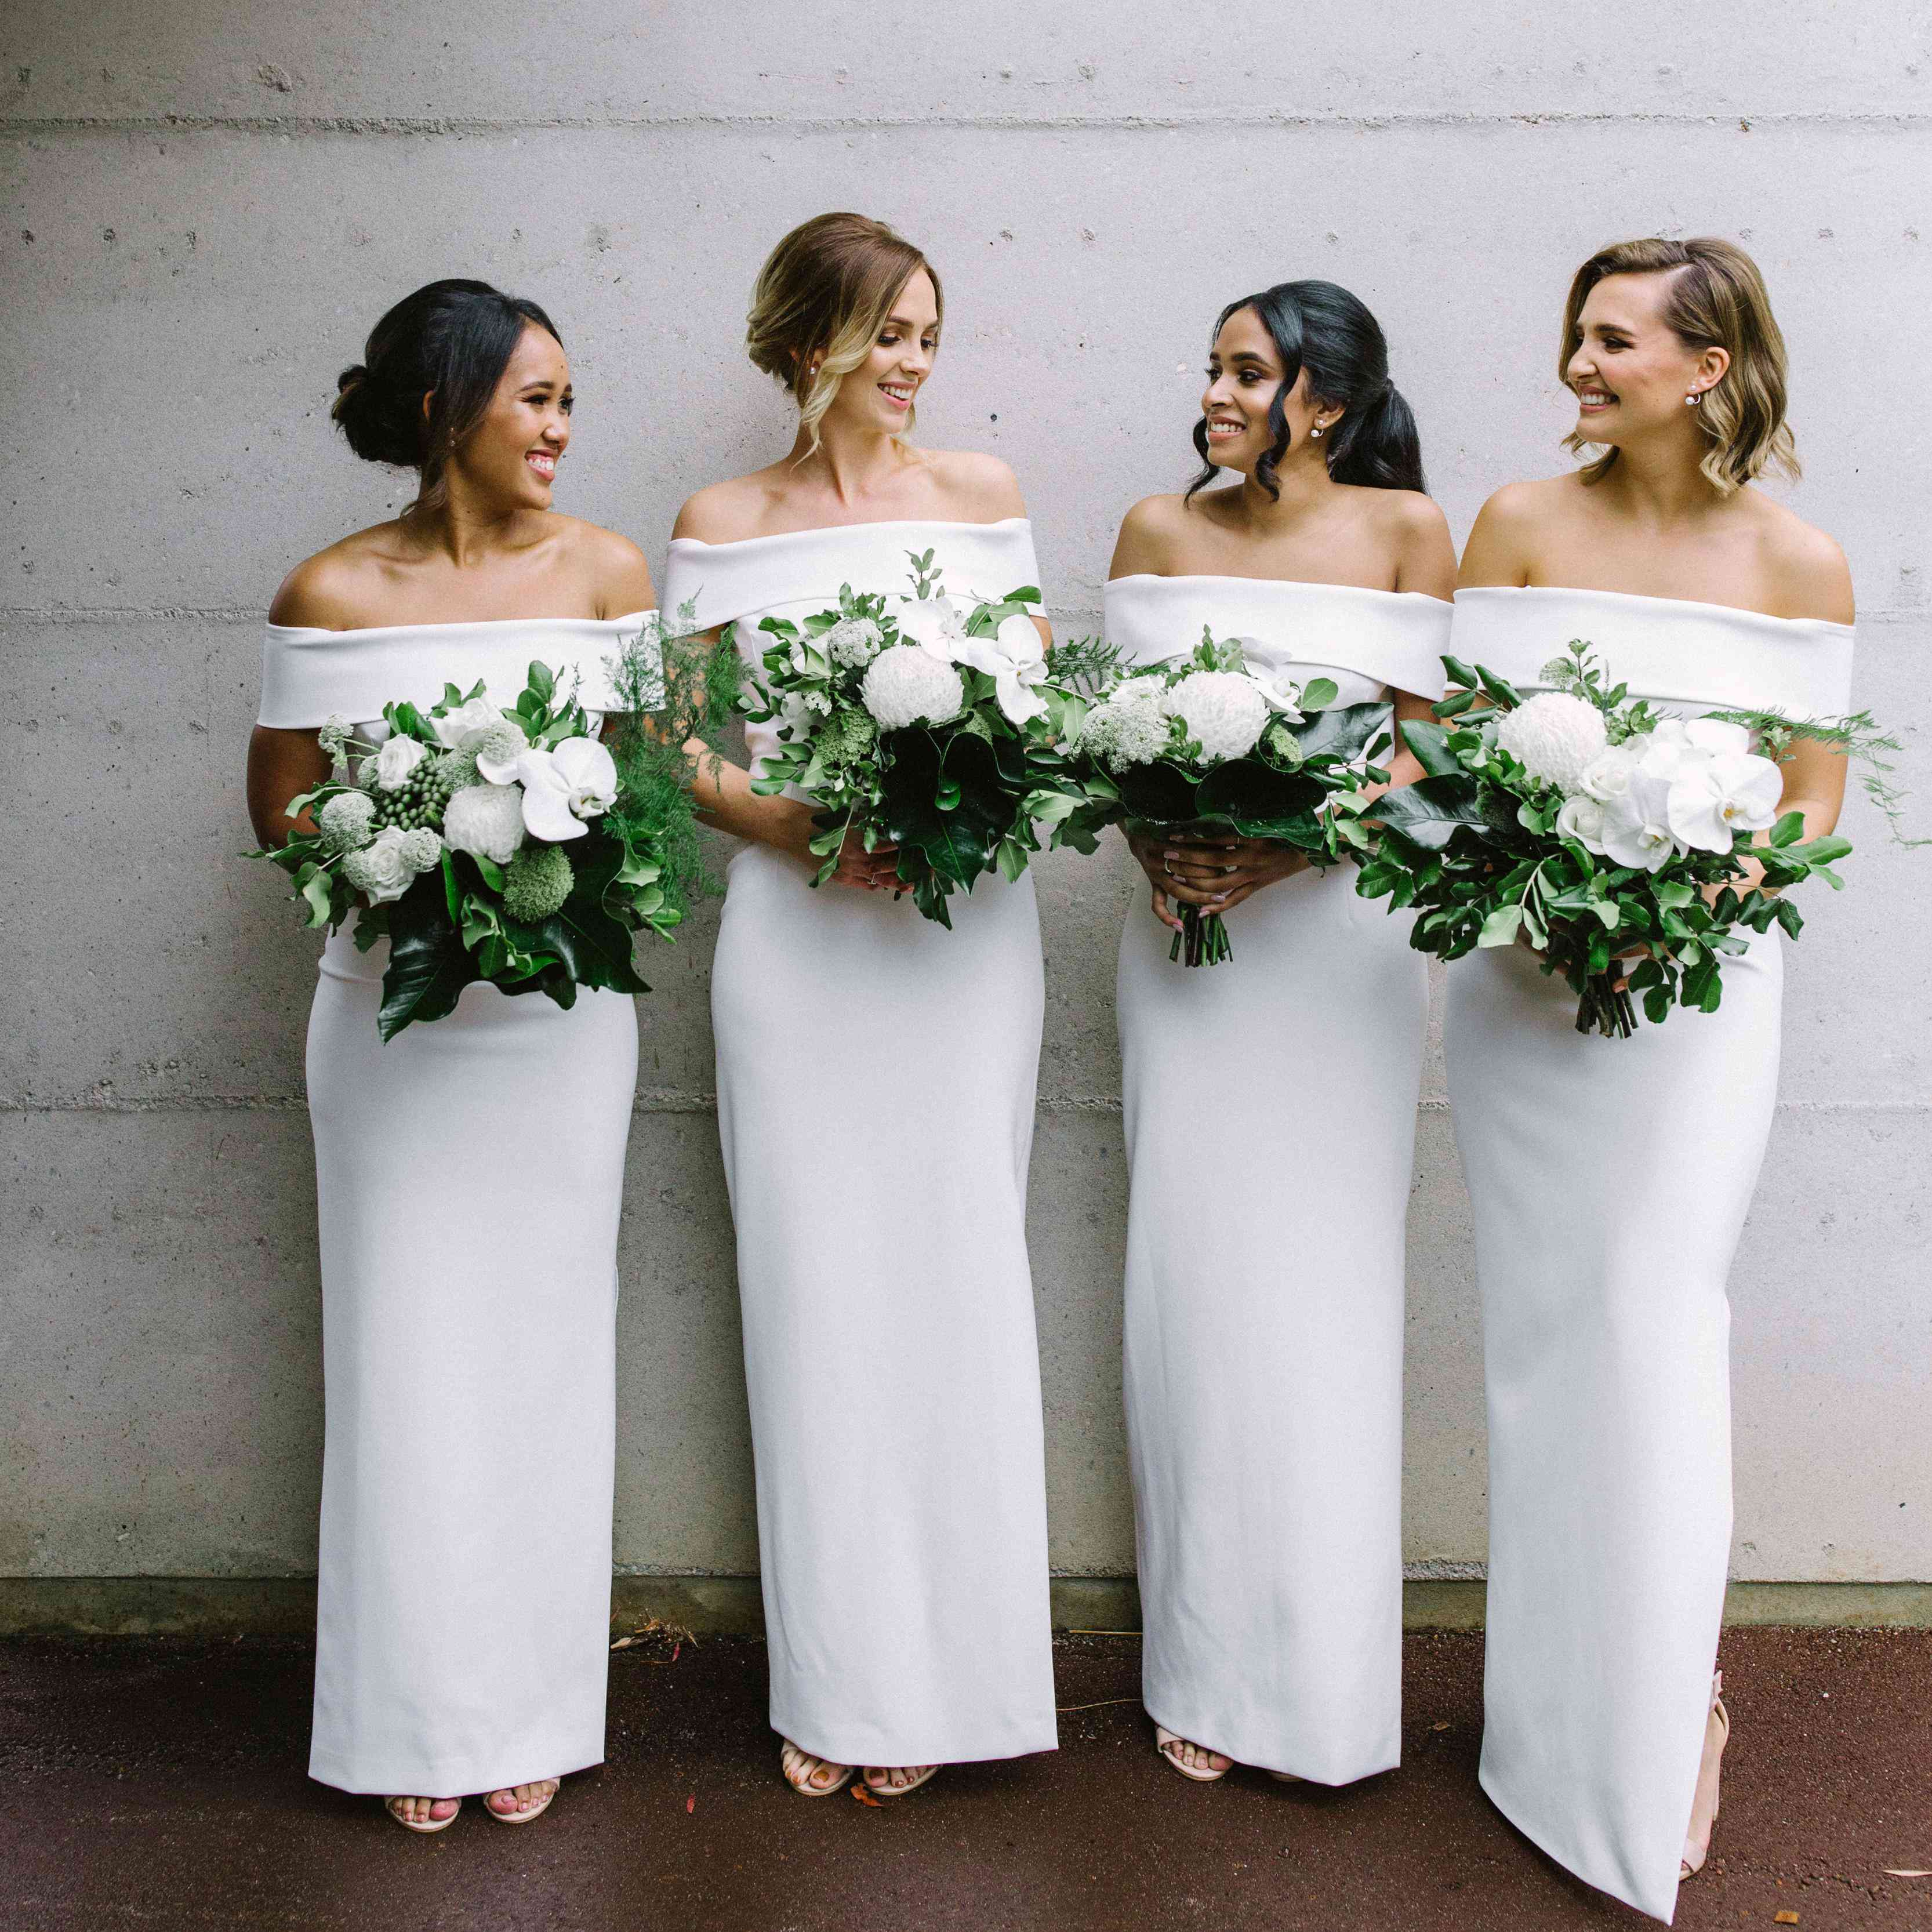 Can My Bridesmaids Wear White Dresses